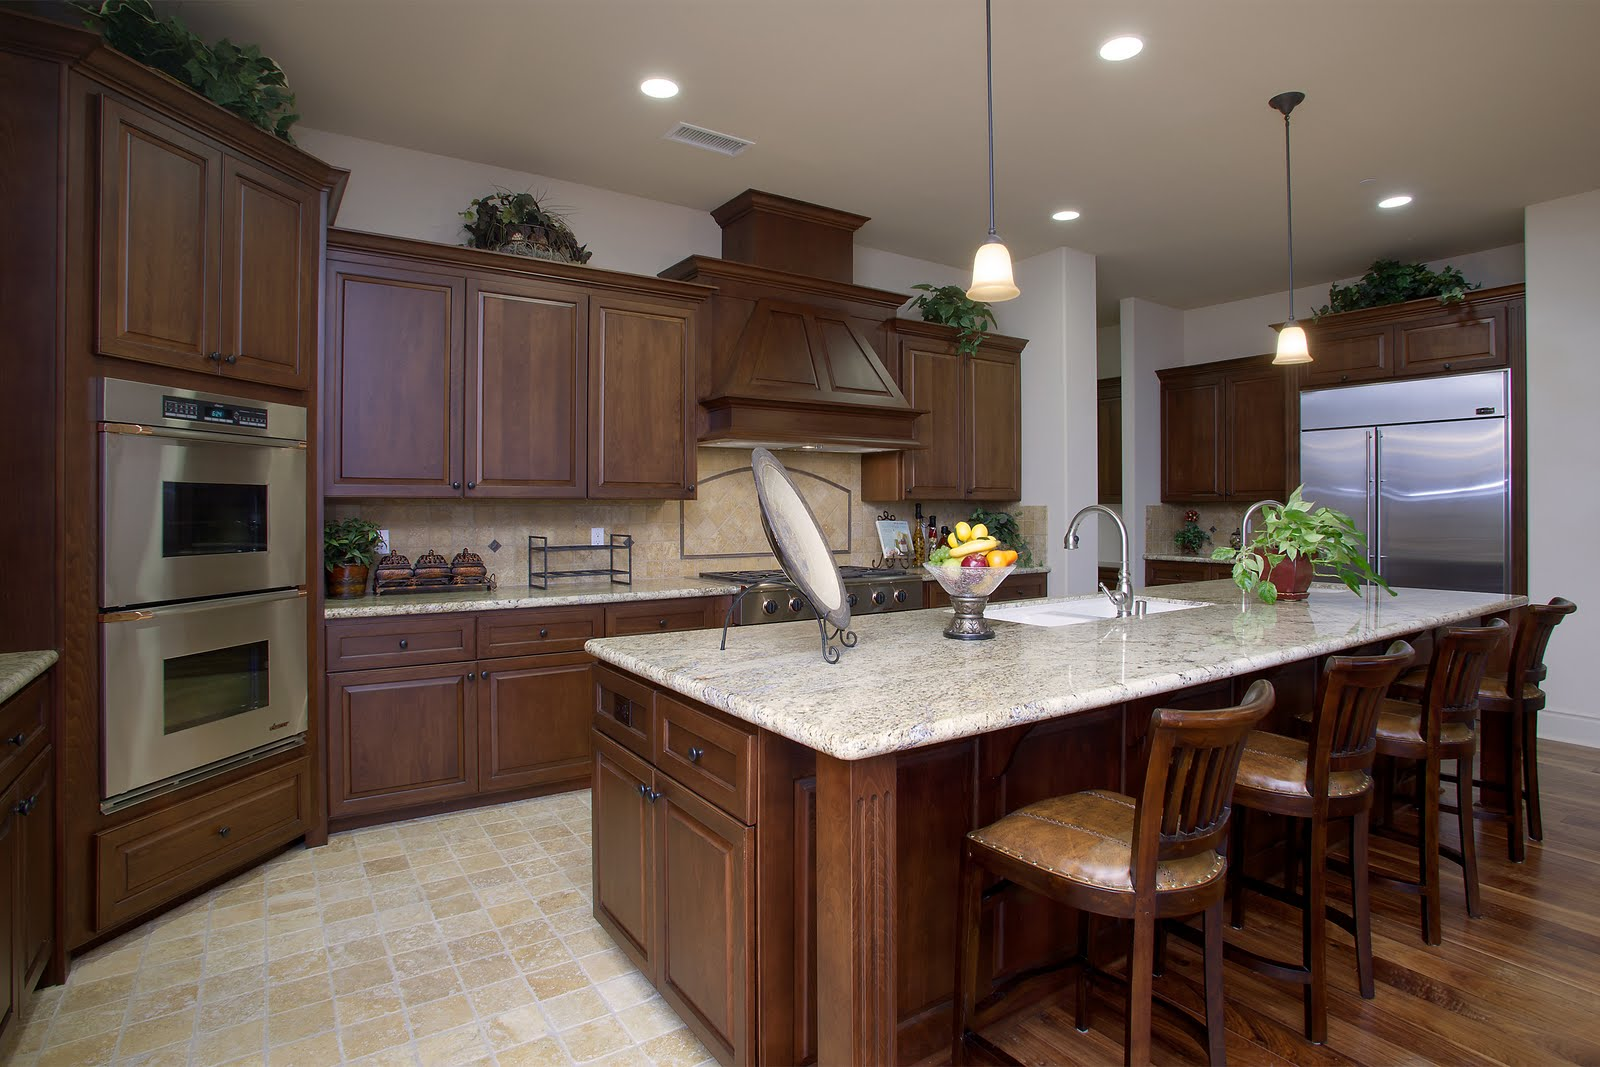 Kitchen Model Homes Kitchen Model Homes  Wallpaper Side Blog